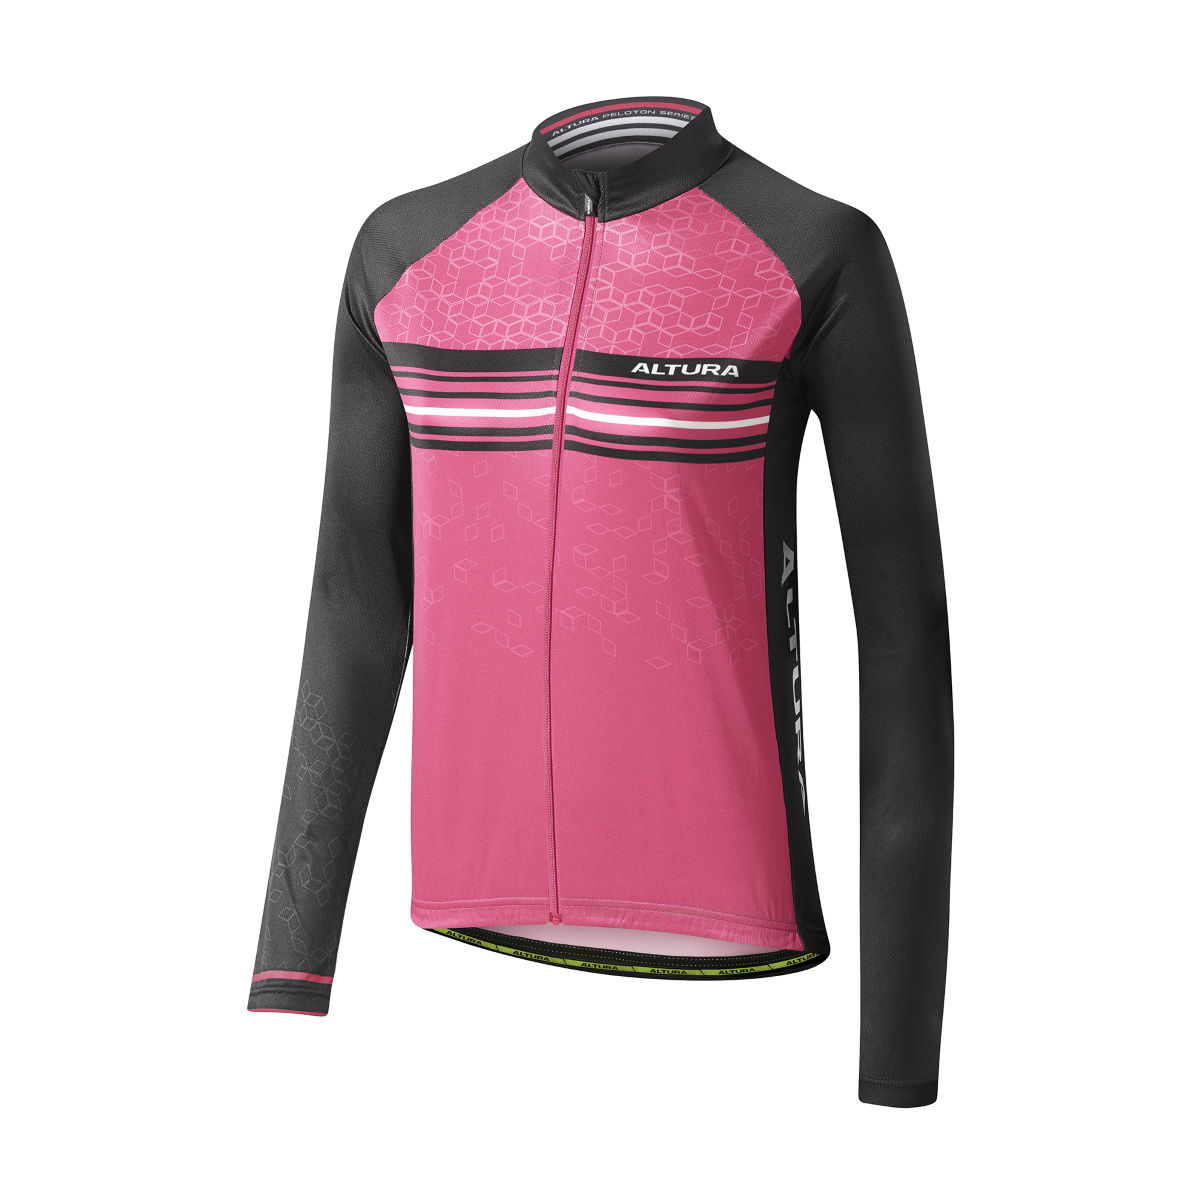 Maillot Femme Altura Sportive Team (manches longues) - 8 UK Maillots